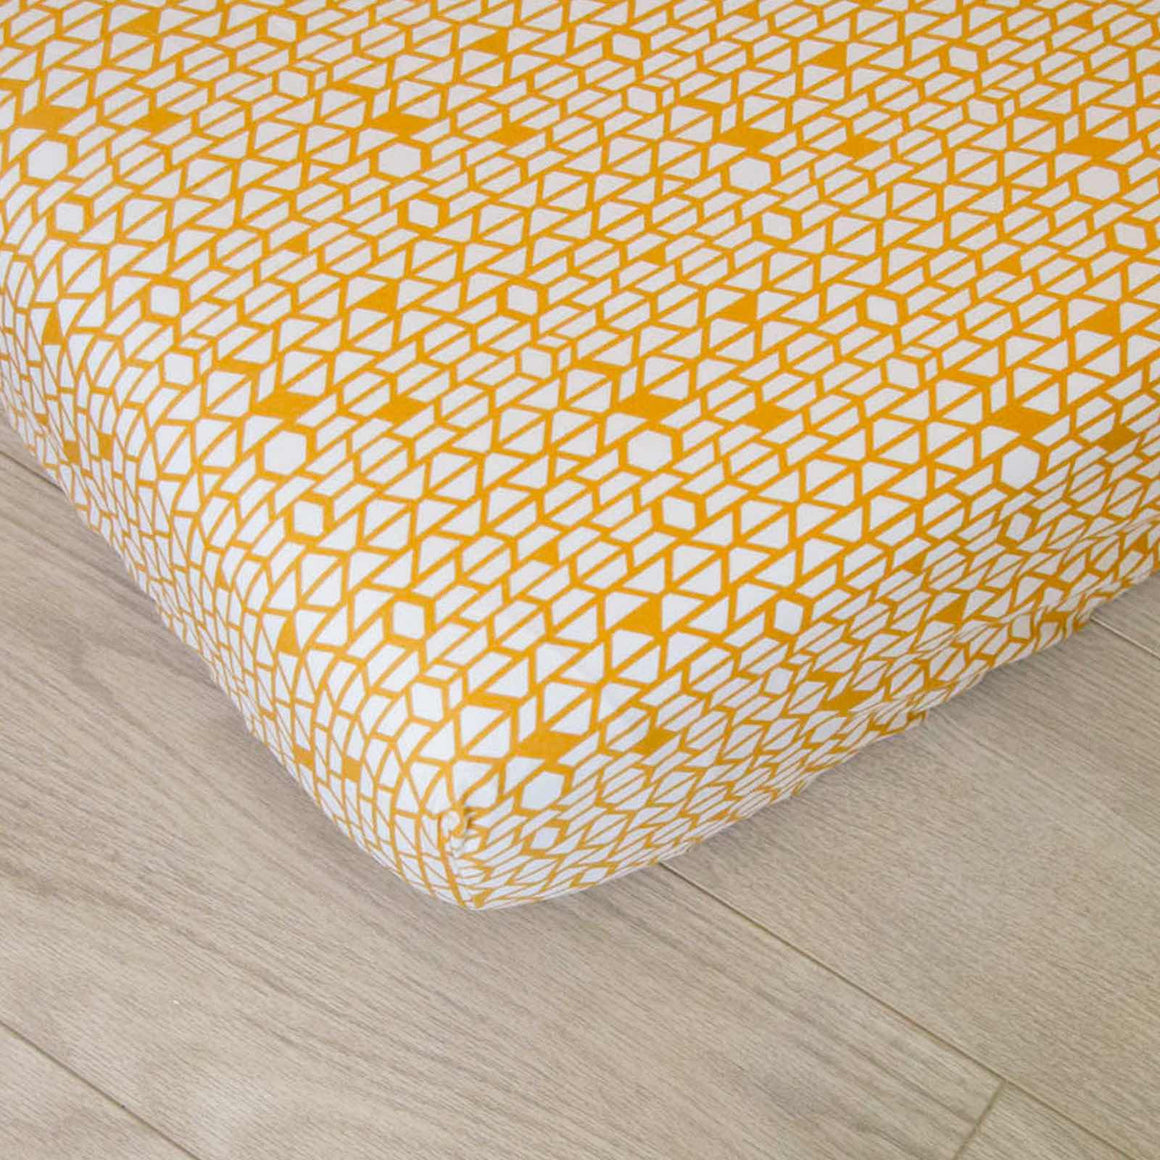 Fitted Crib Sheet - White and Gold